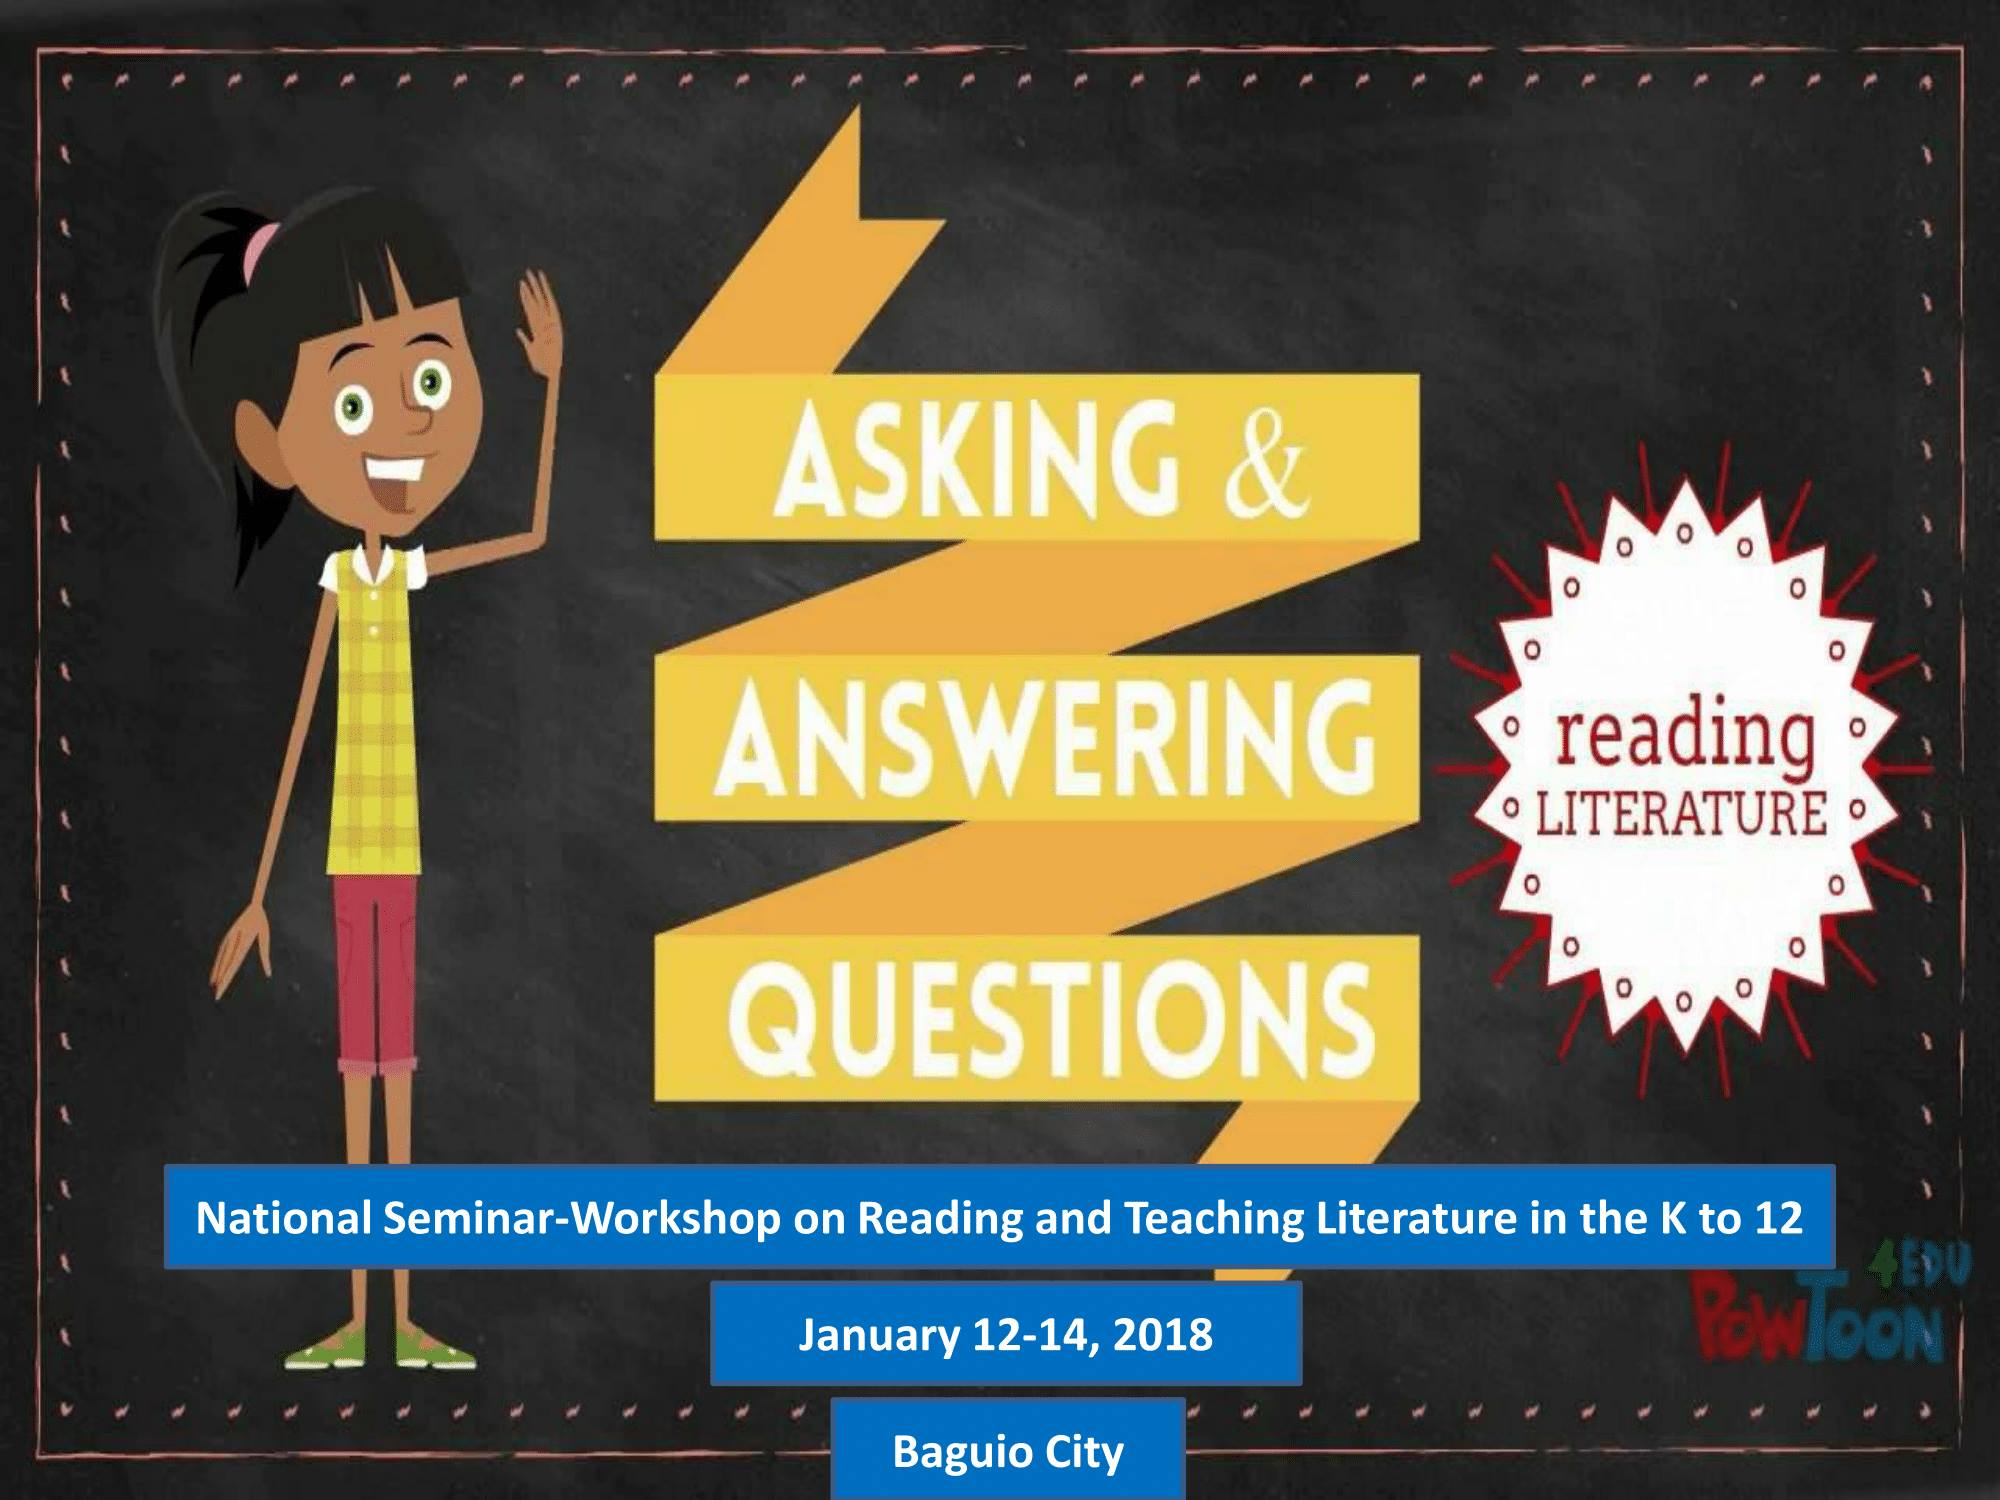 National Seminar-Workshop on Reading And Teaching Literature